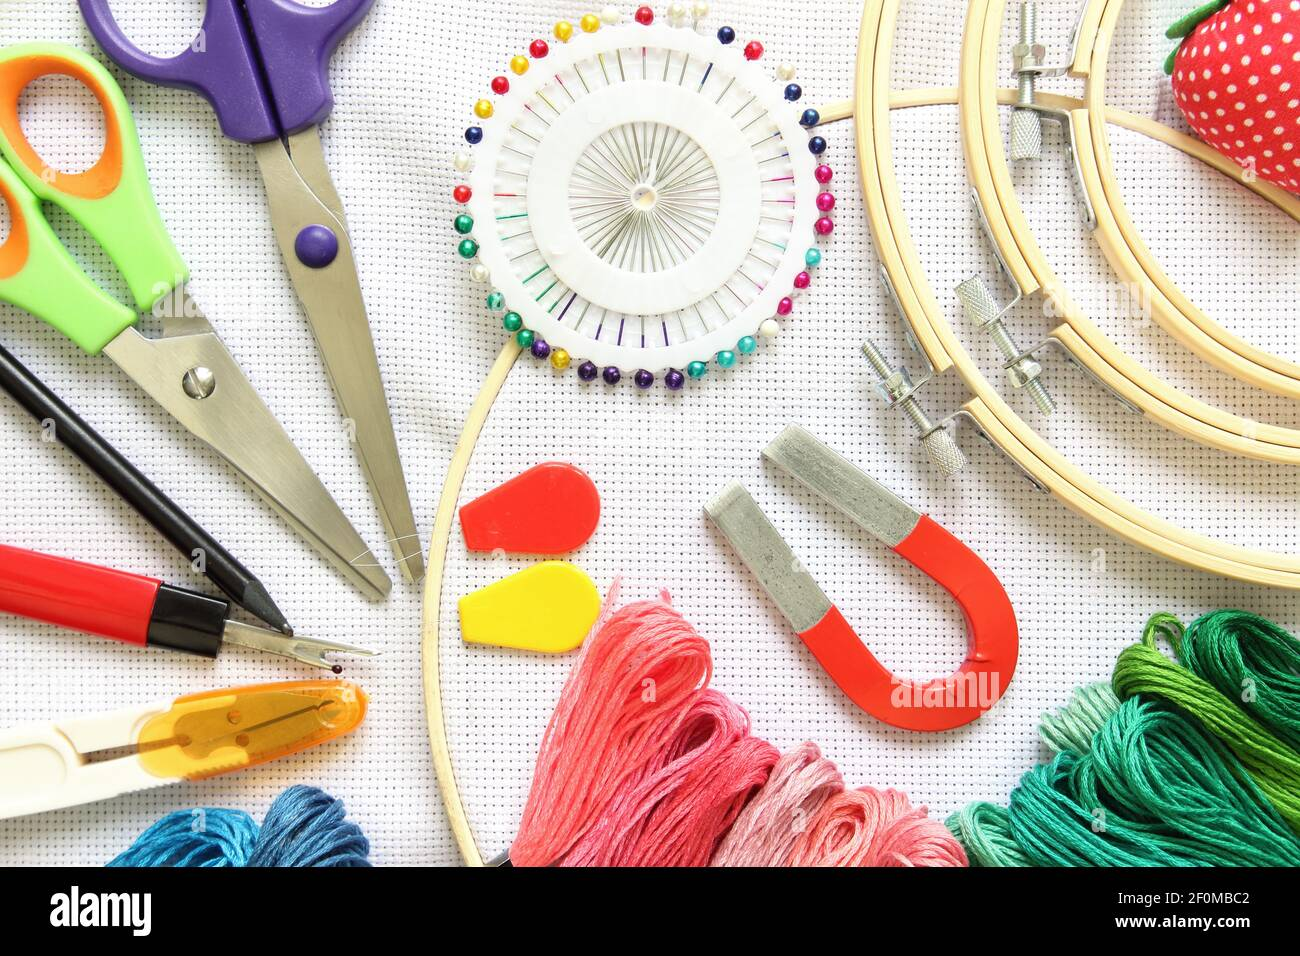 embroidery hoop with sewing accessory, scissors, embroidery threads and needle on a white fabric canvas Stock Photo